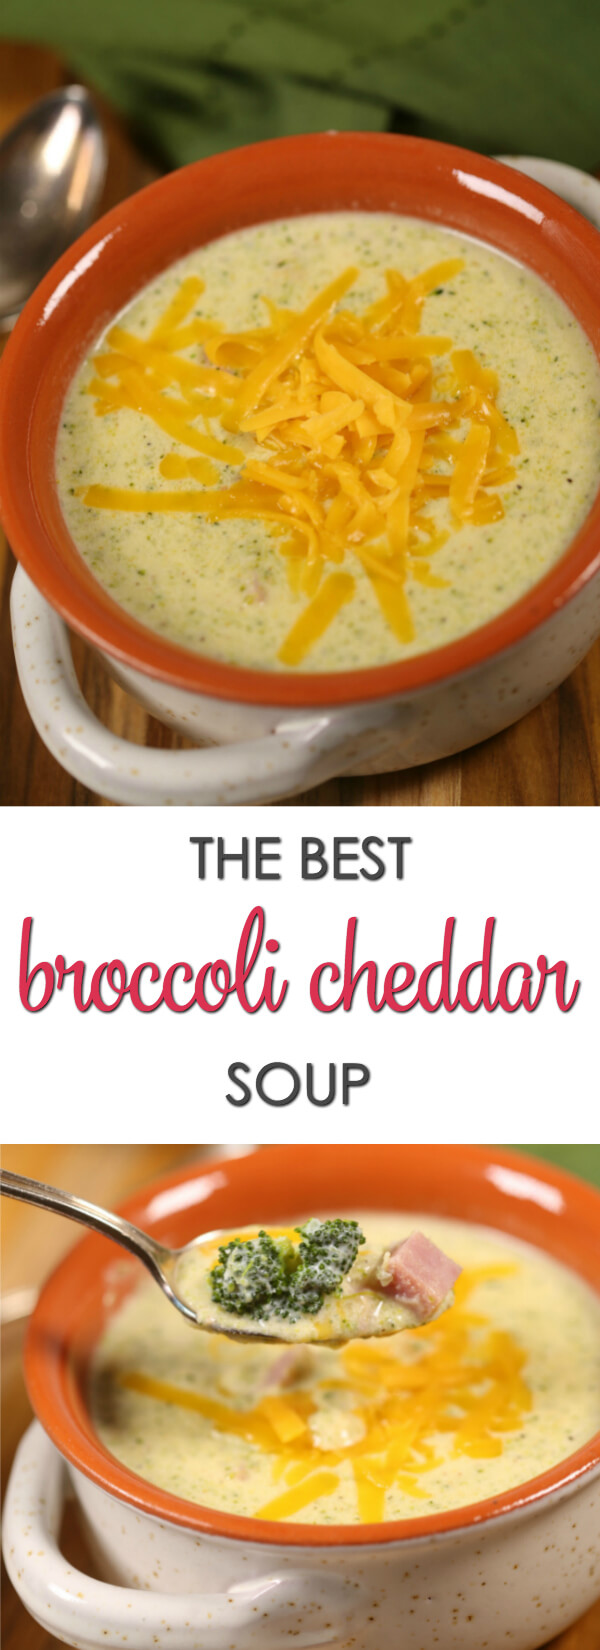 This is the best Broccoli Cheese Soup recipe I've ever tried.  It's rich, flavorful and creamy.  I love that it can be made in less than 30 minutes with only a few simple ingredients.  #Soup #30MinuteRecipe #EasyRecipe